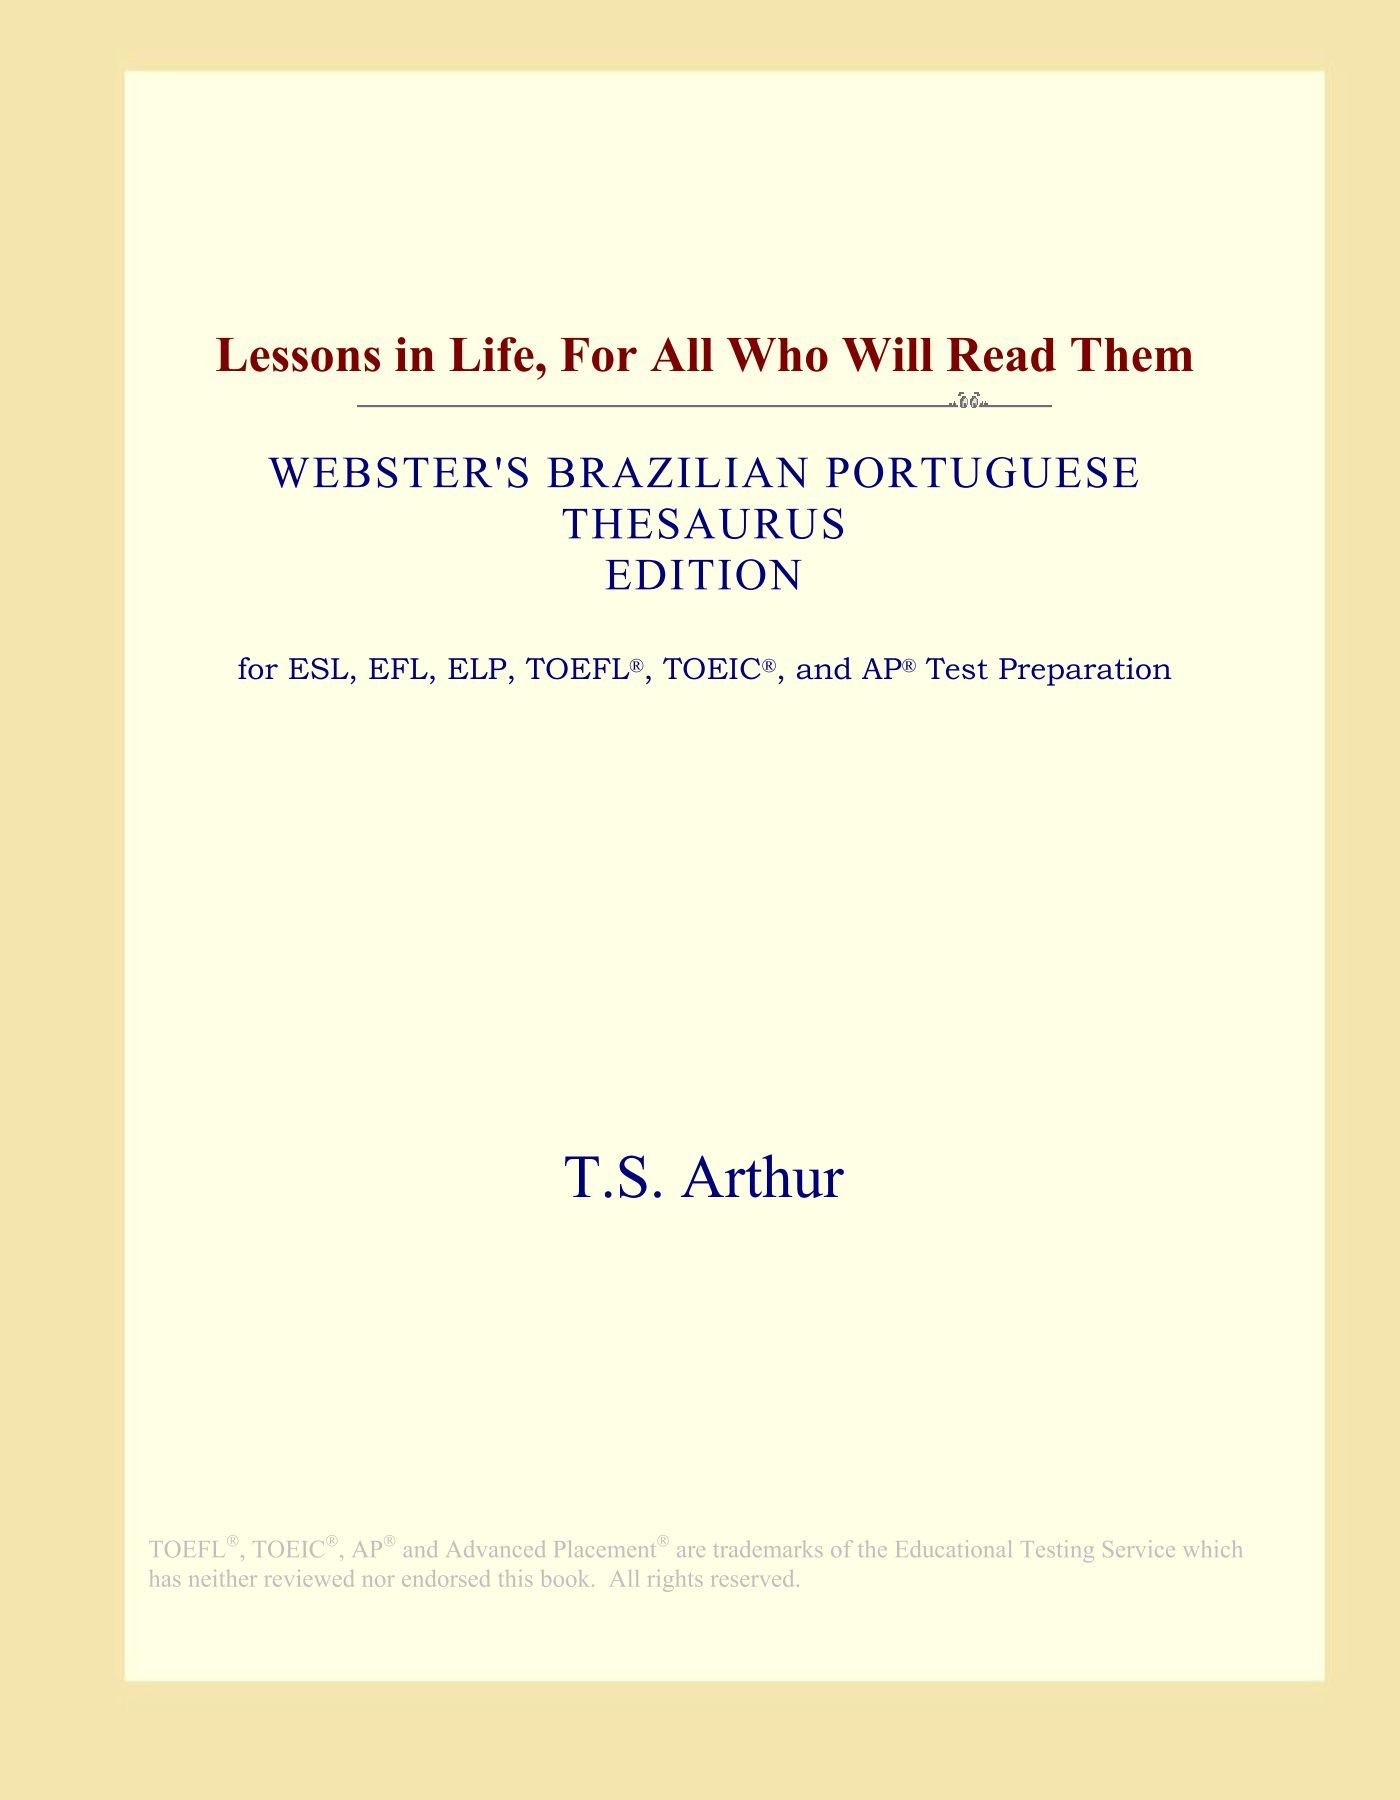 Download Lessons in Life, For All Who Will Read Them (Webster's Brazilian Portuguese Thesaurus Edition) pdf epub